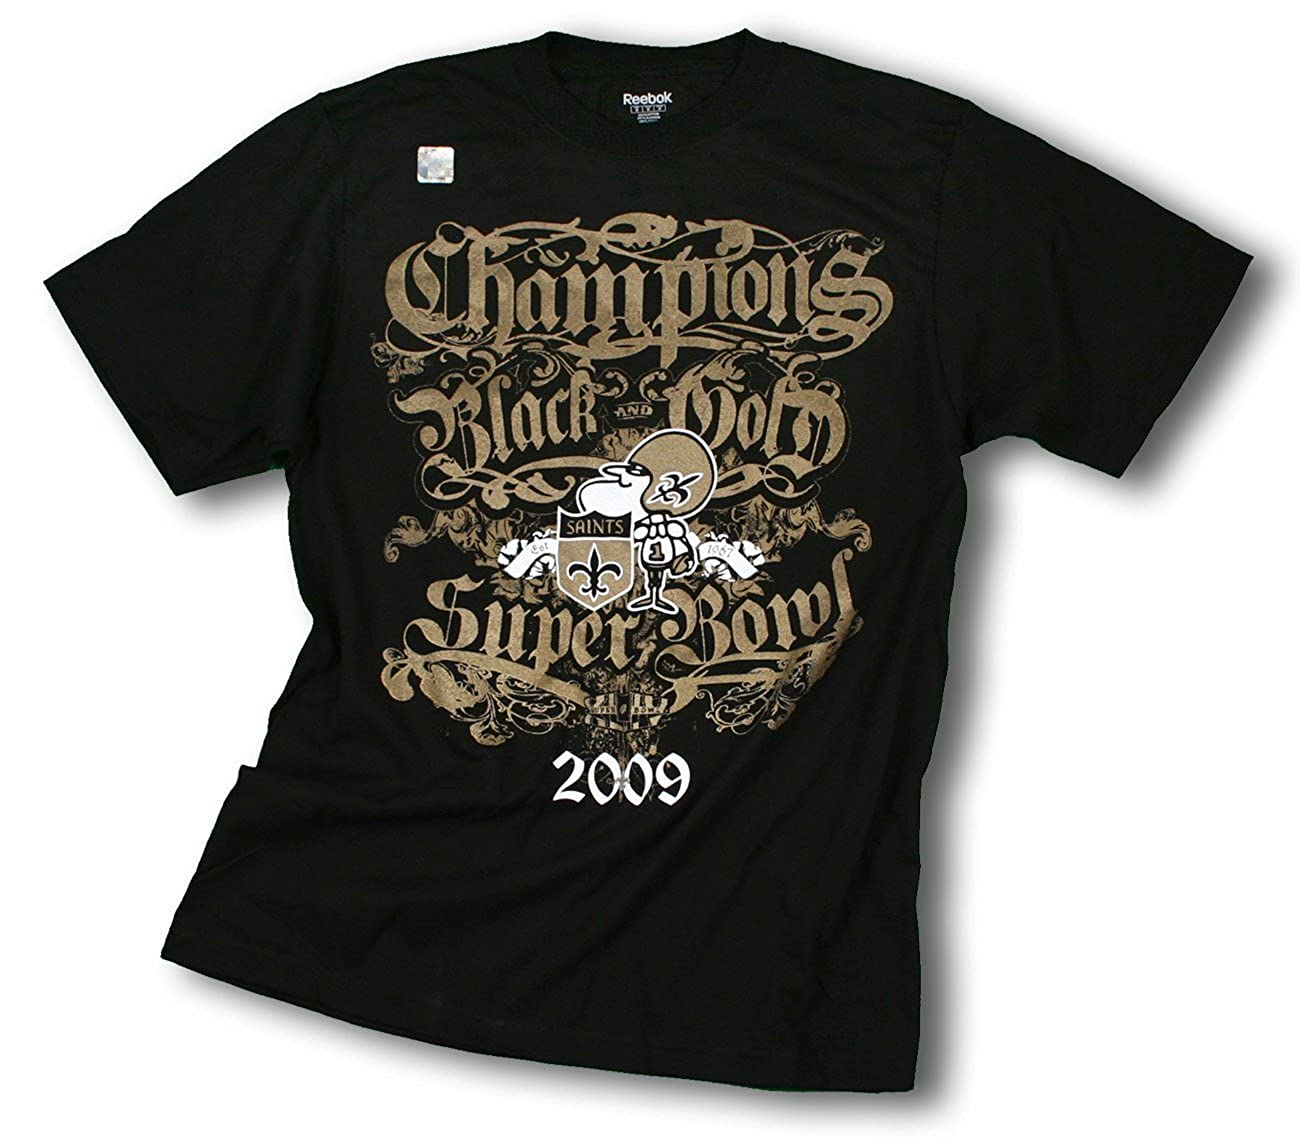 81b573d04 Amazon.com: New Orleans Saints SB 44 NFL Champions T-shirt (Medium):  Clothing